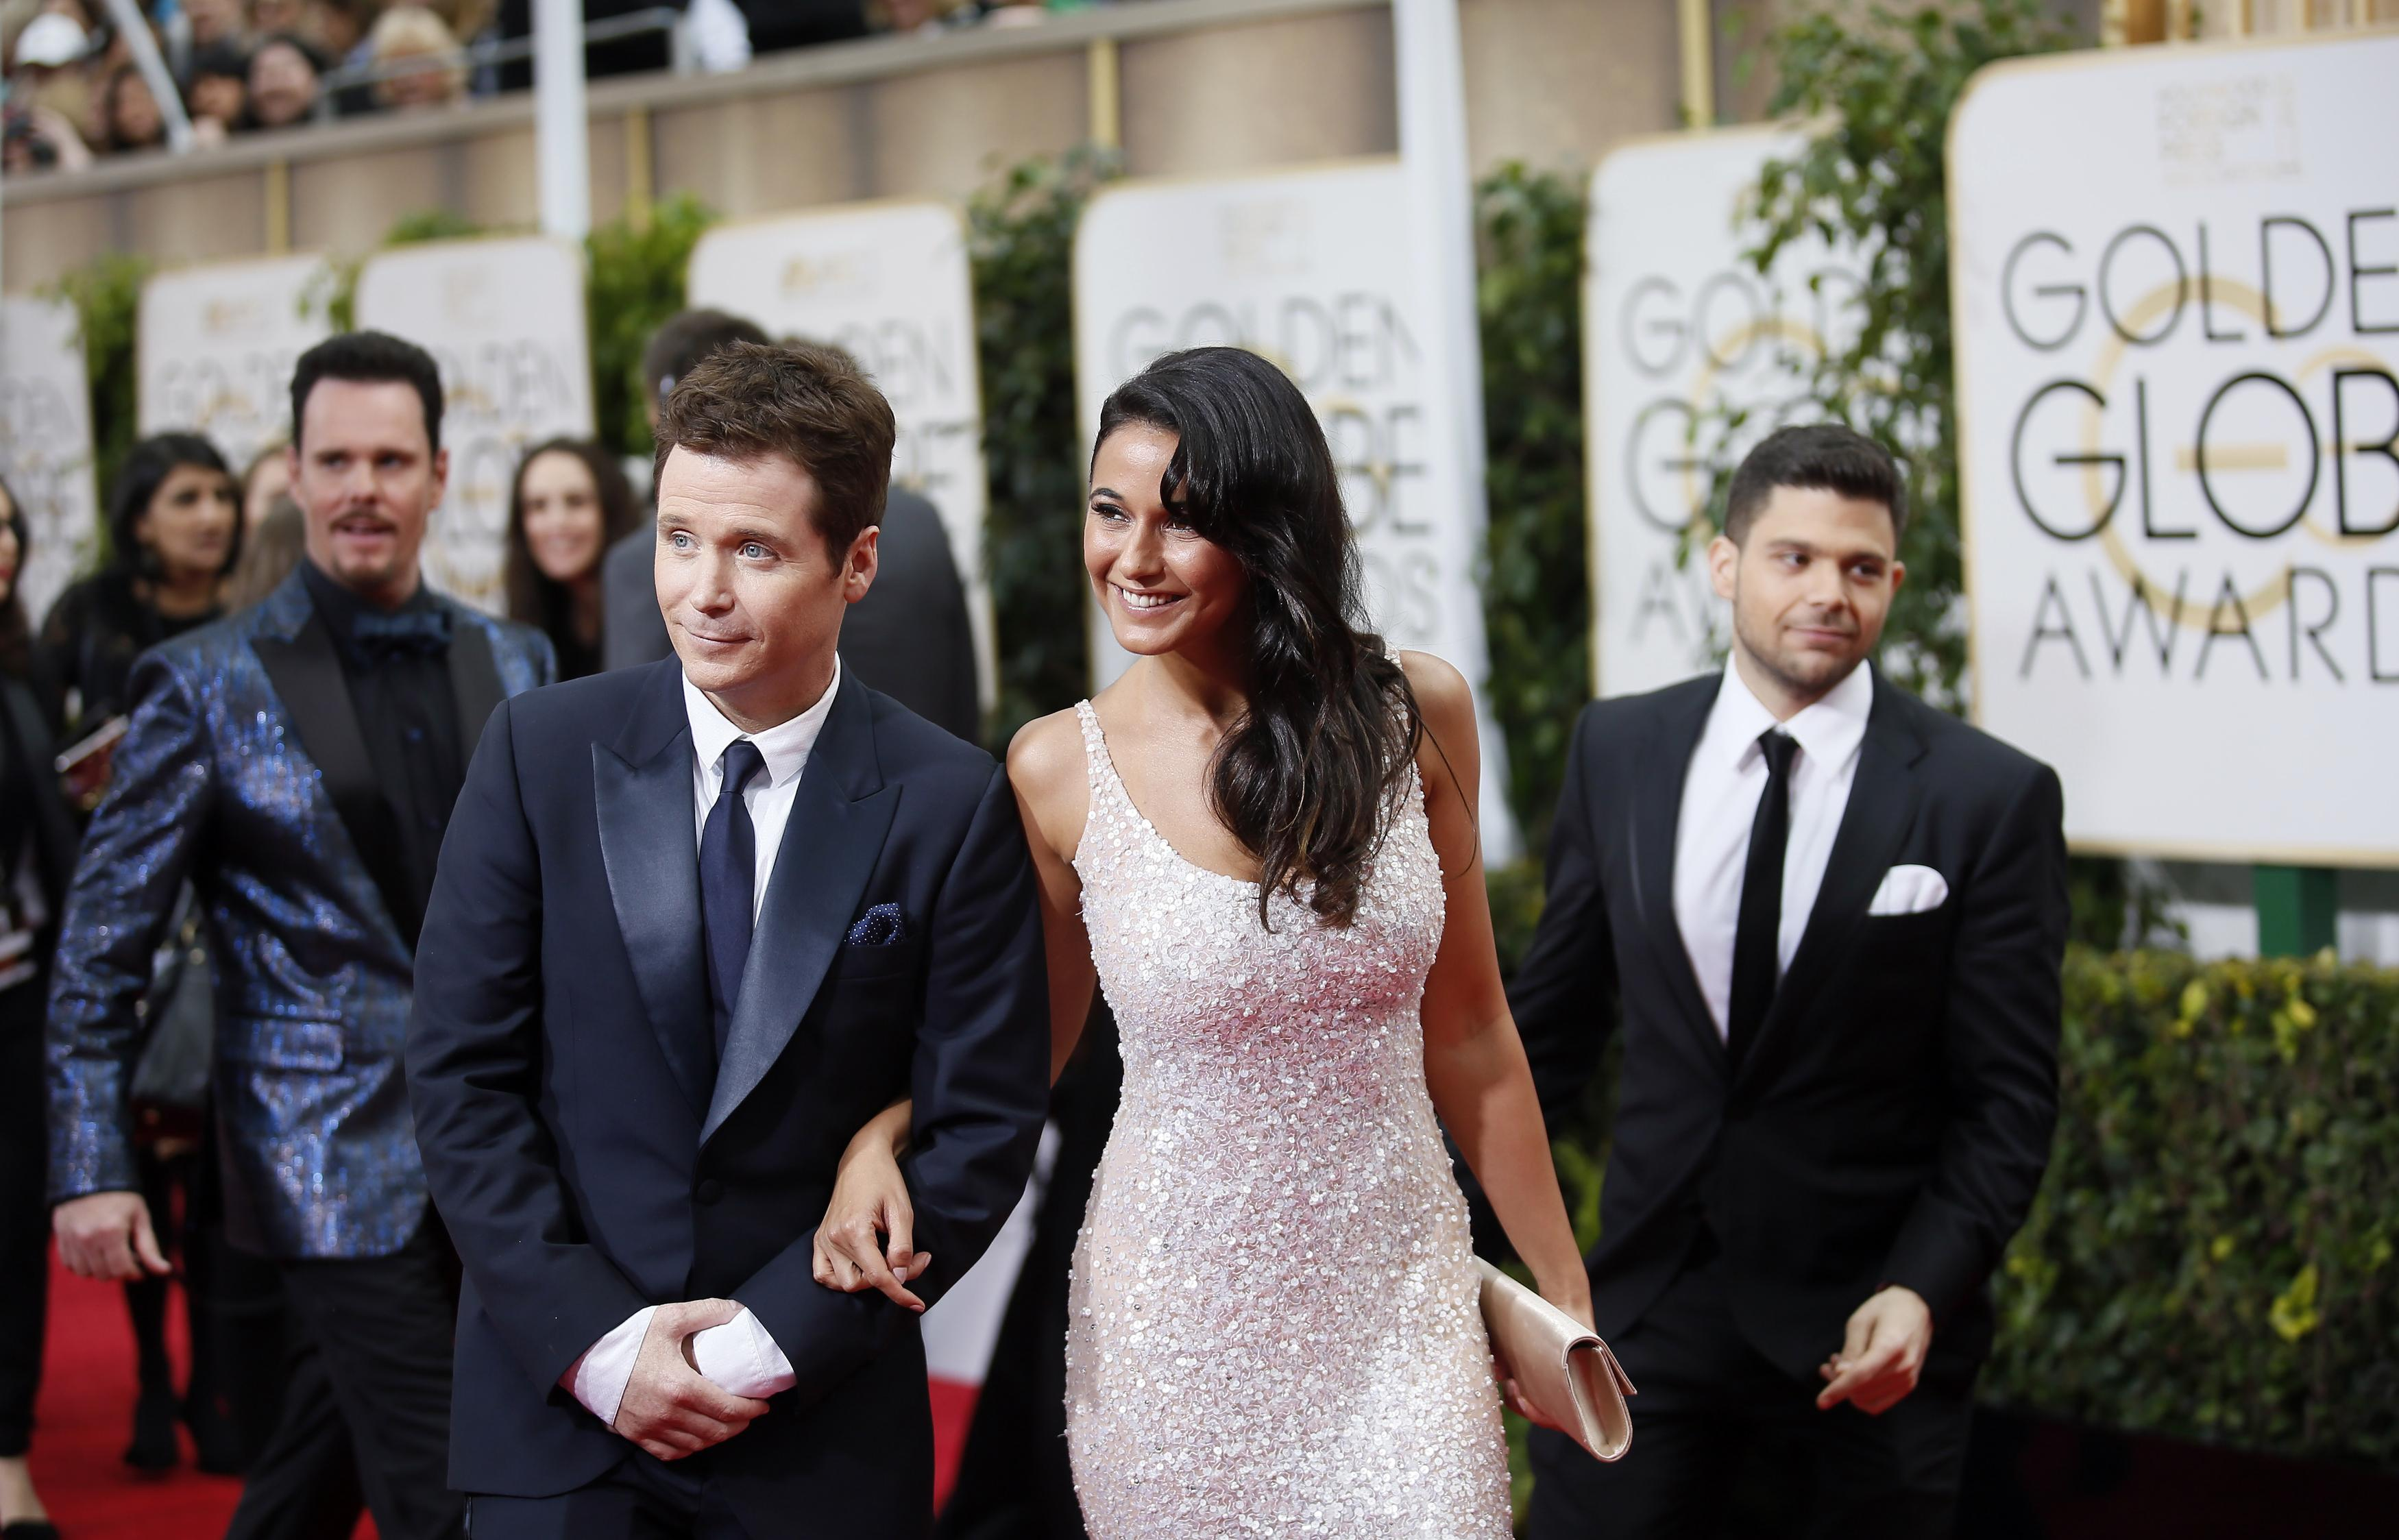 Golden Globes Red Carpet 2015 Photos Of Your Favorite